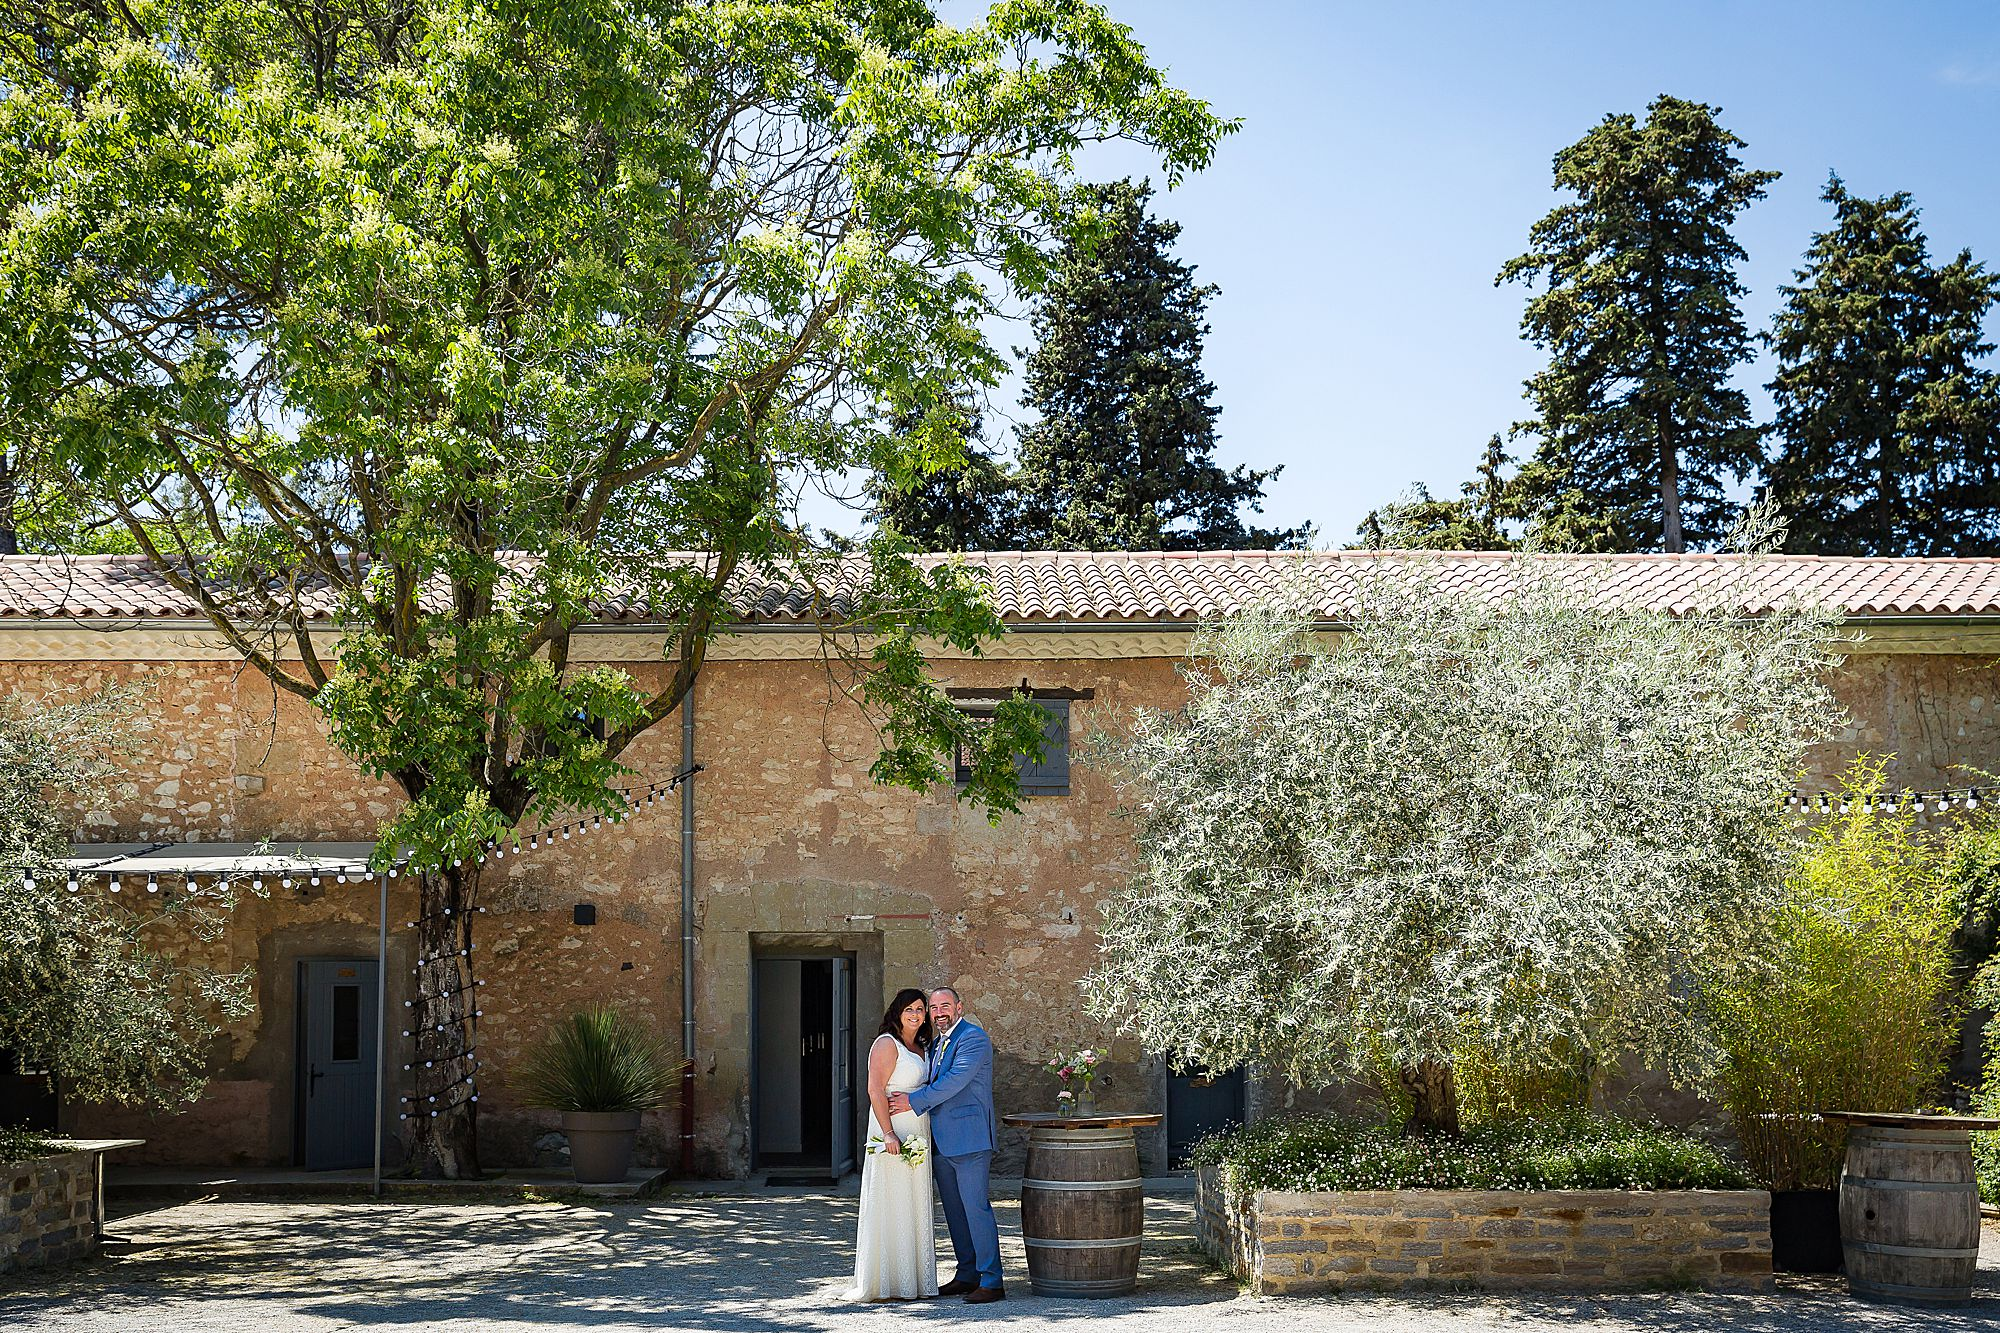 Domaine de la Grangette wedding photographer